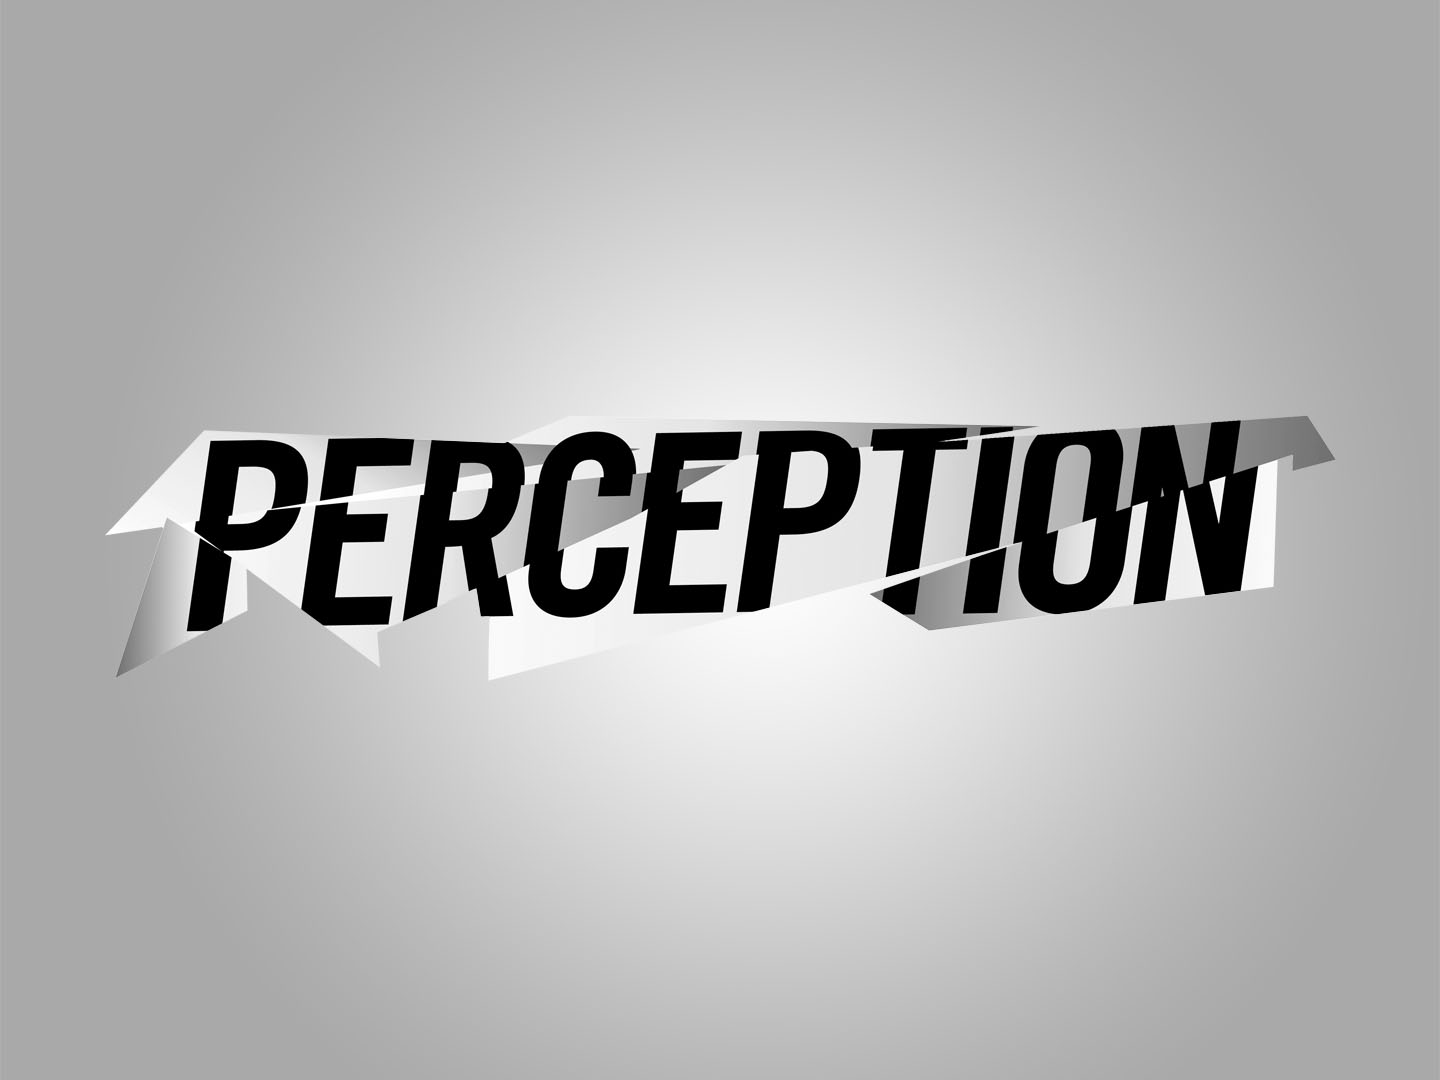 Best Perception Wallpapers 8 Images 1440x1080